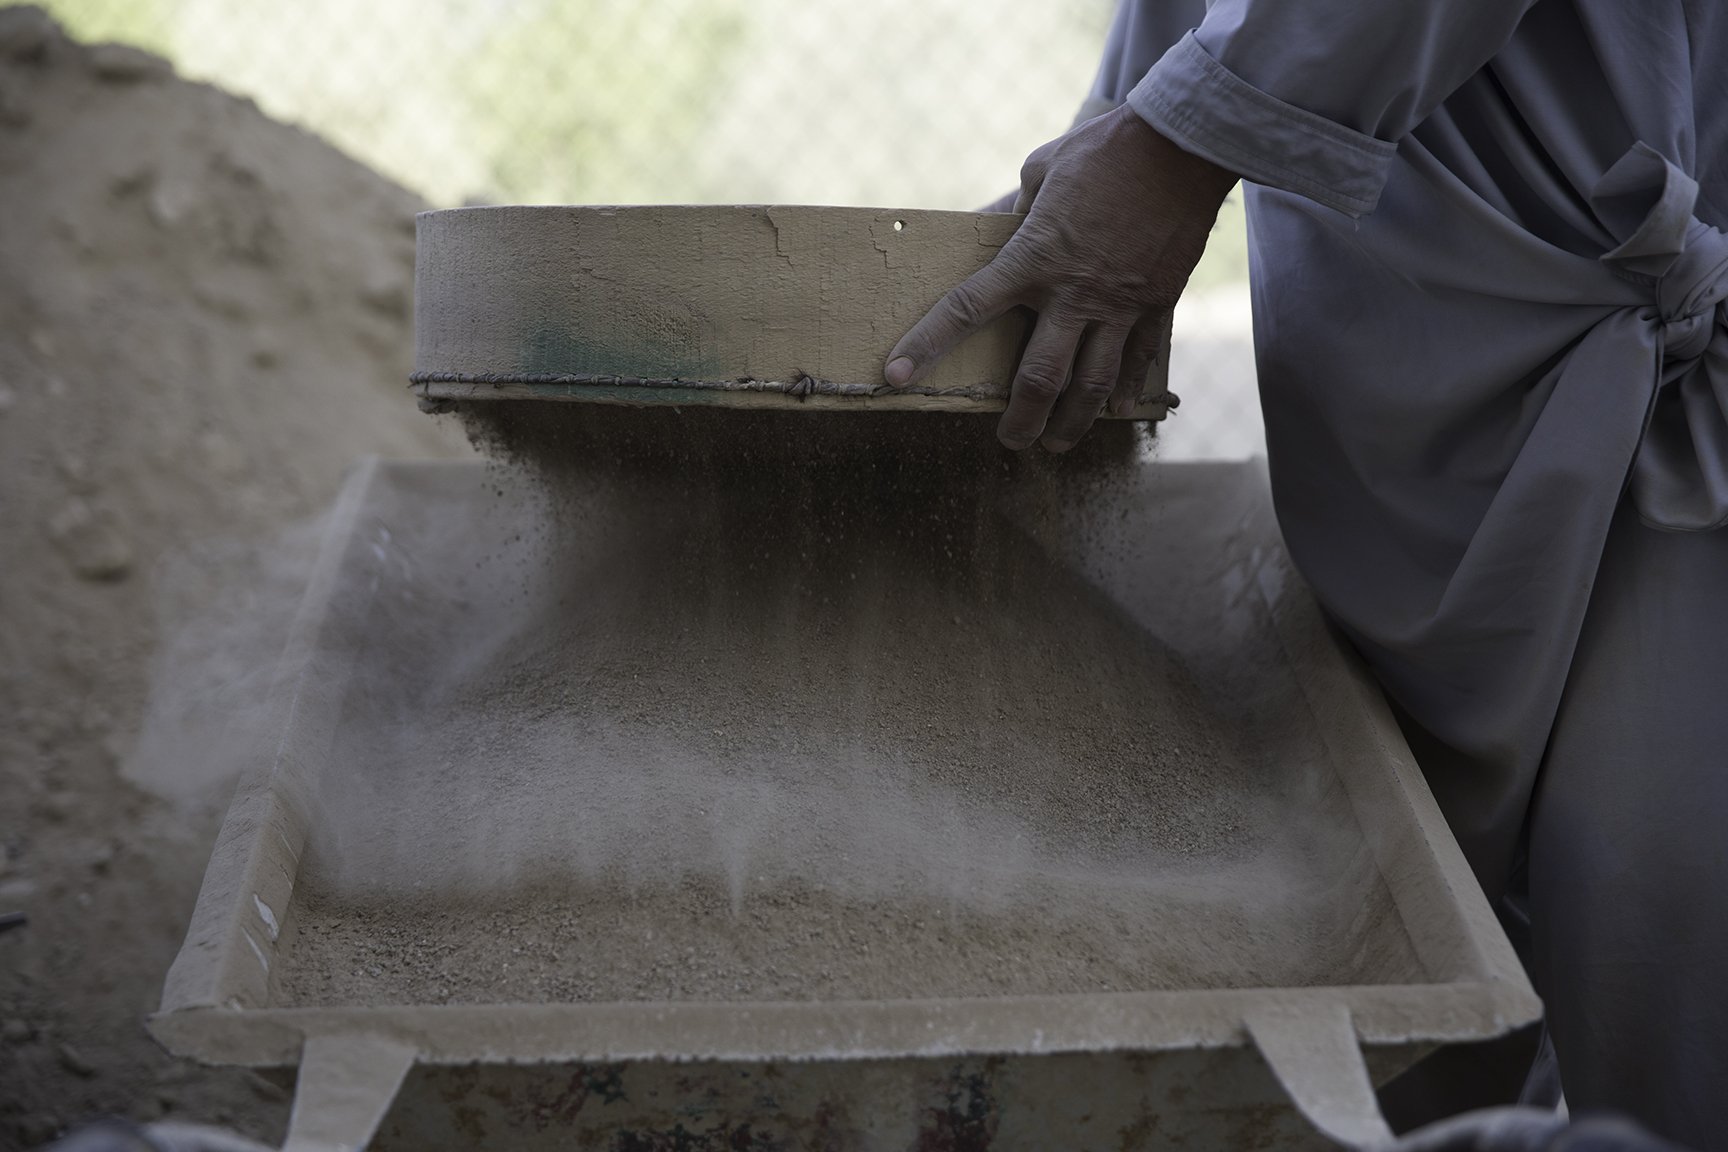 A laborer sifts and screens dirt to be used when mixing concrete.